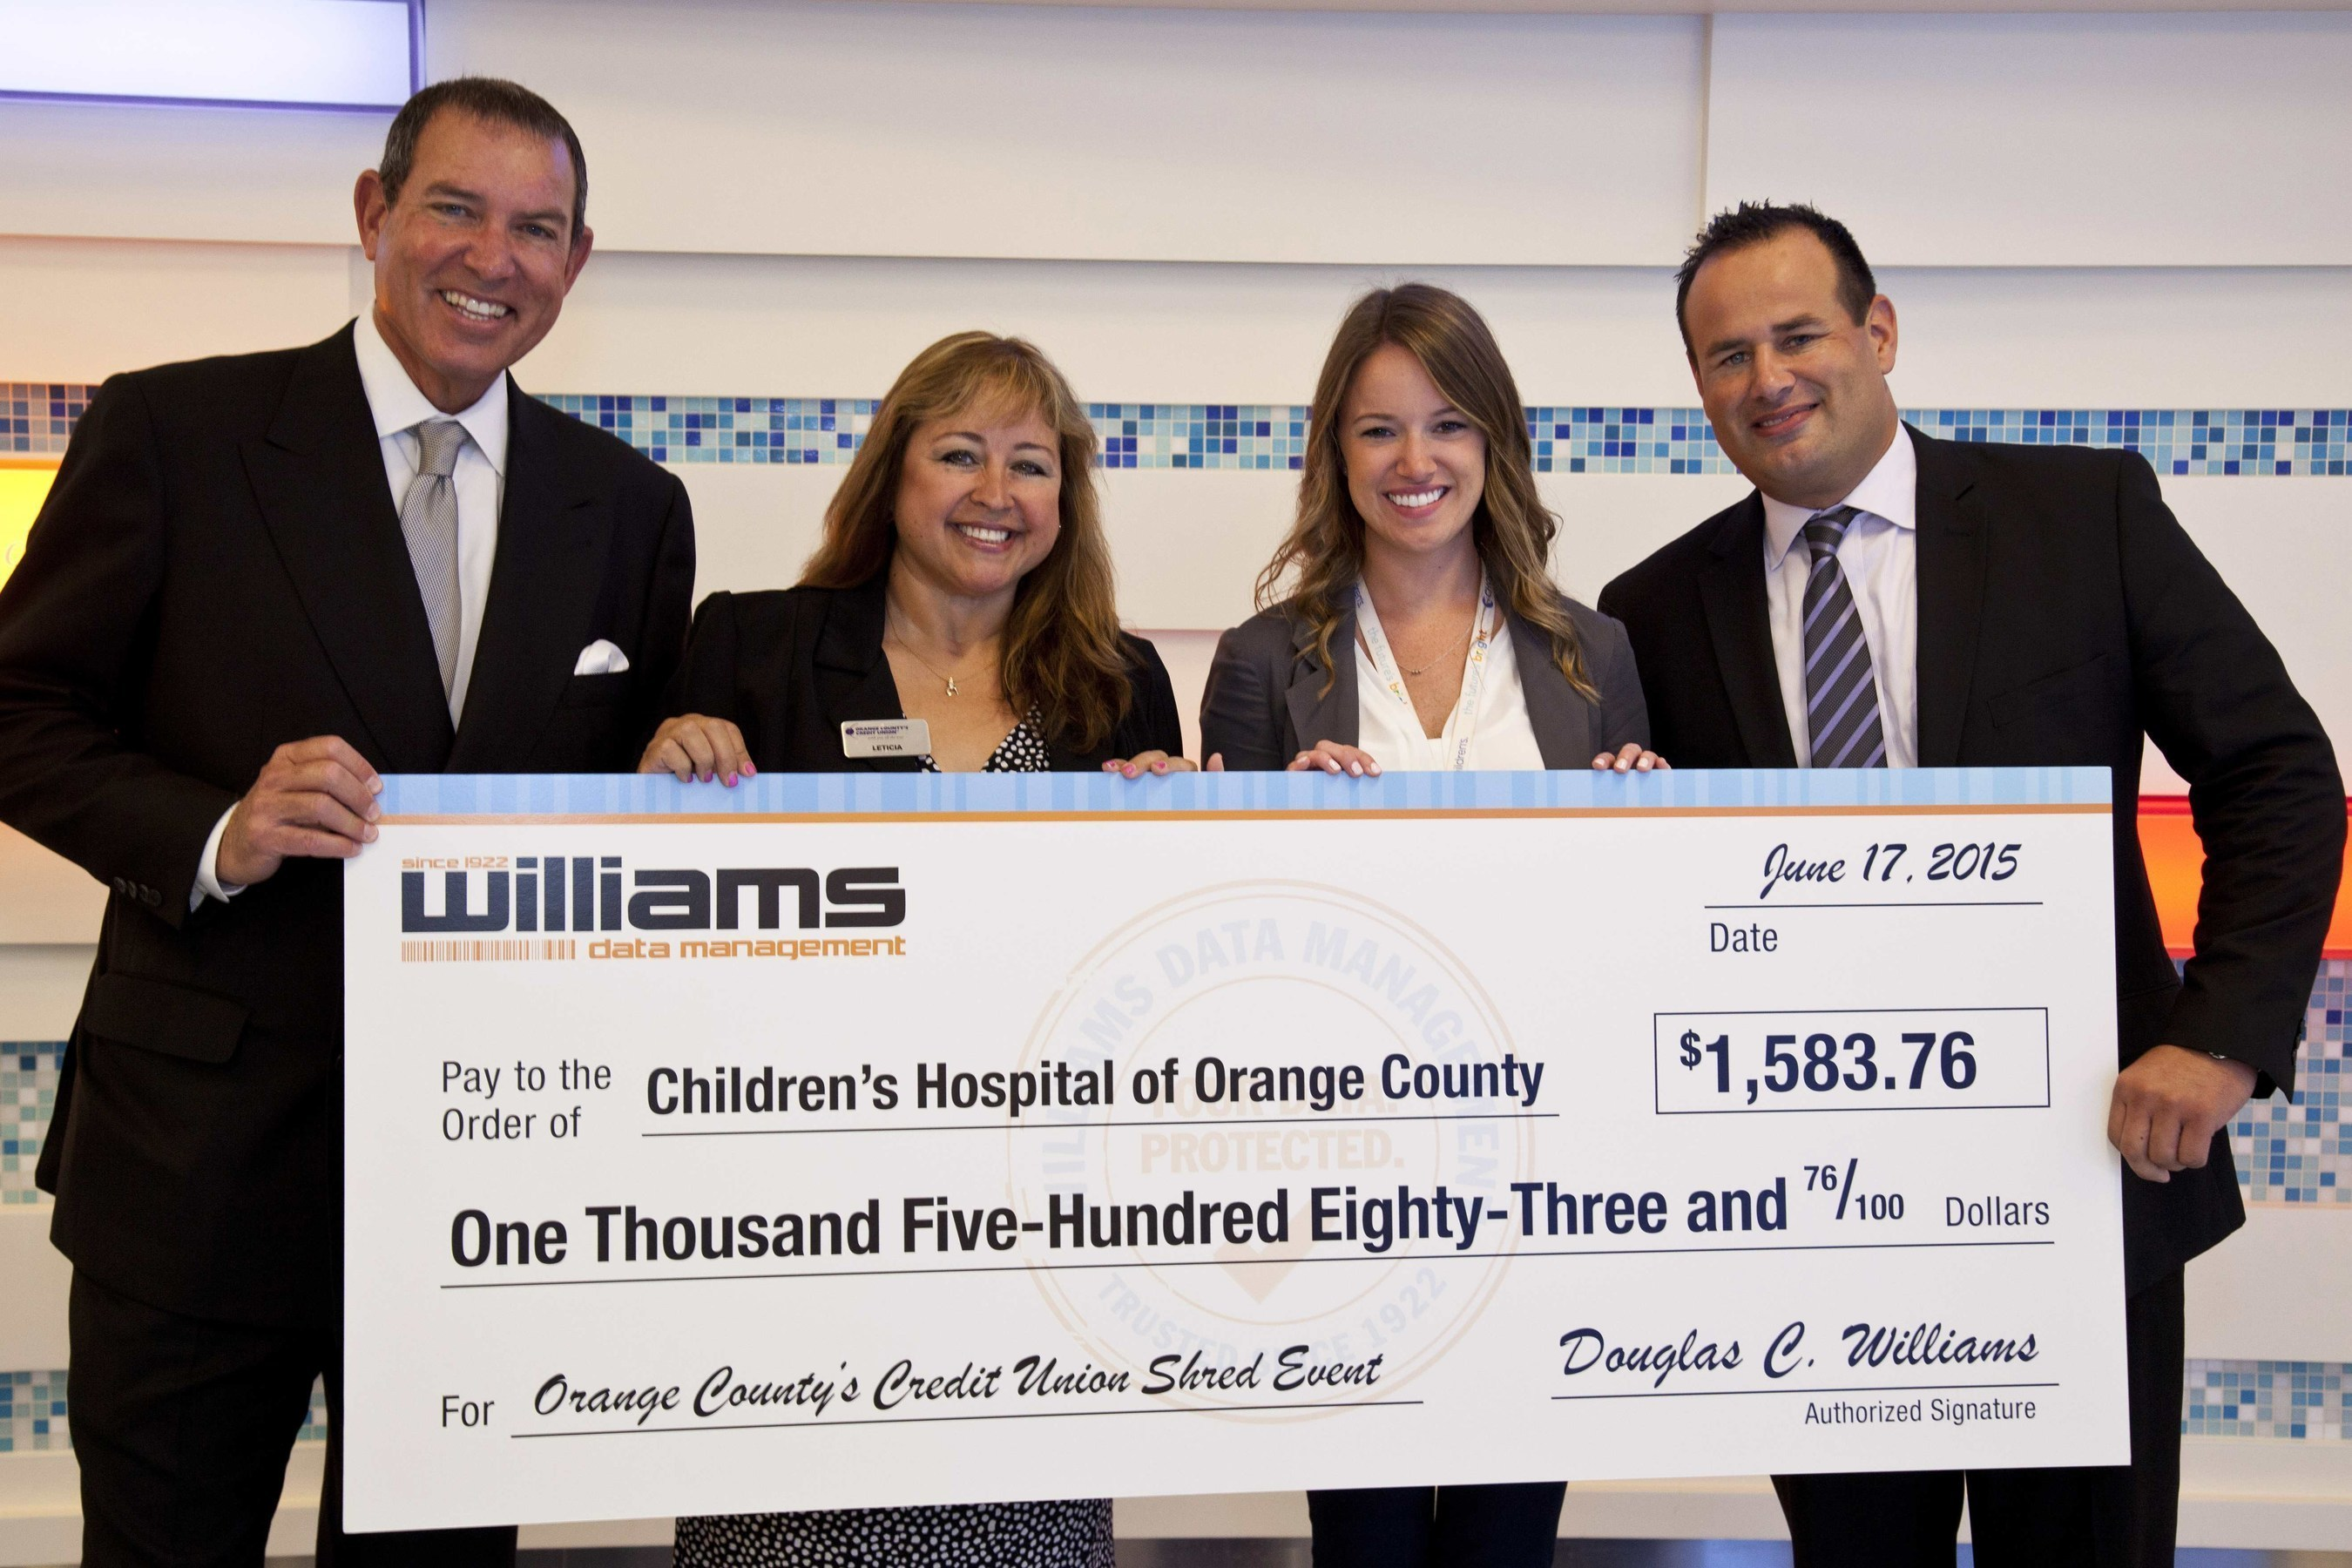 Williams Data Management Supports The Expansion Of CHOC's Neonatal Intensive Care Unit